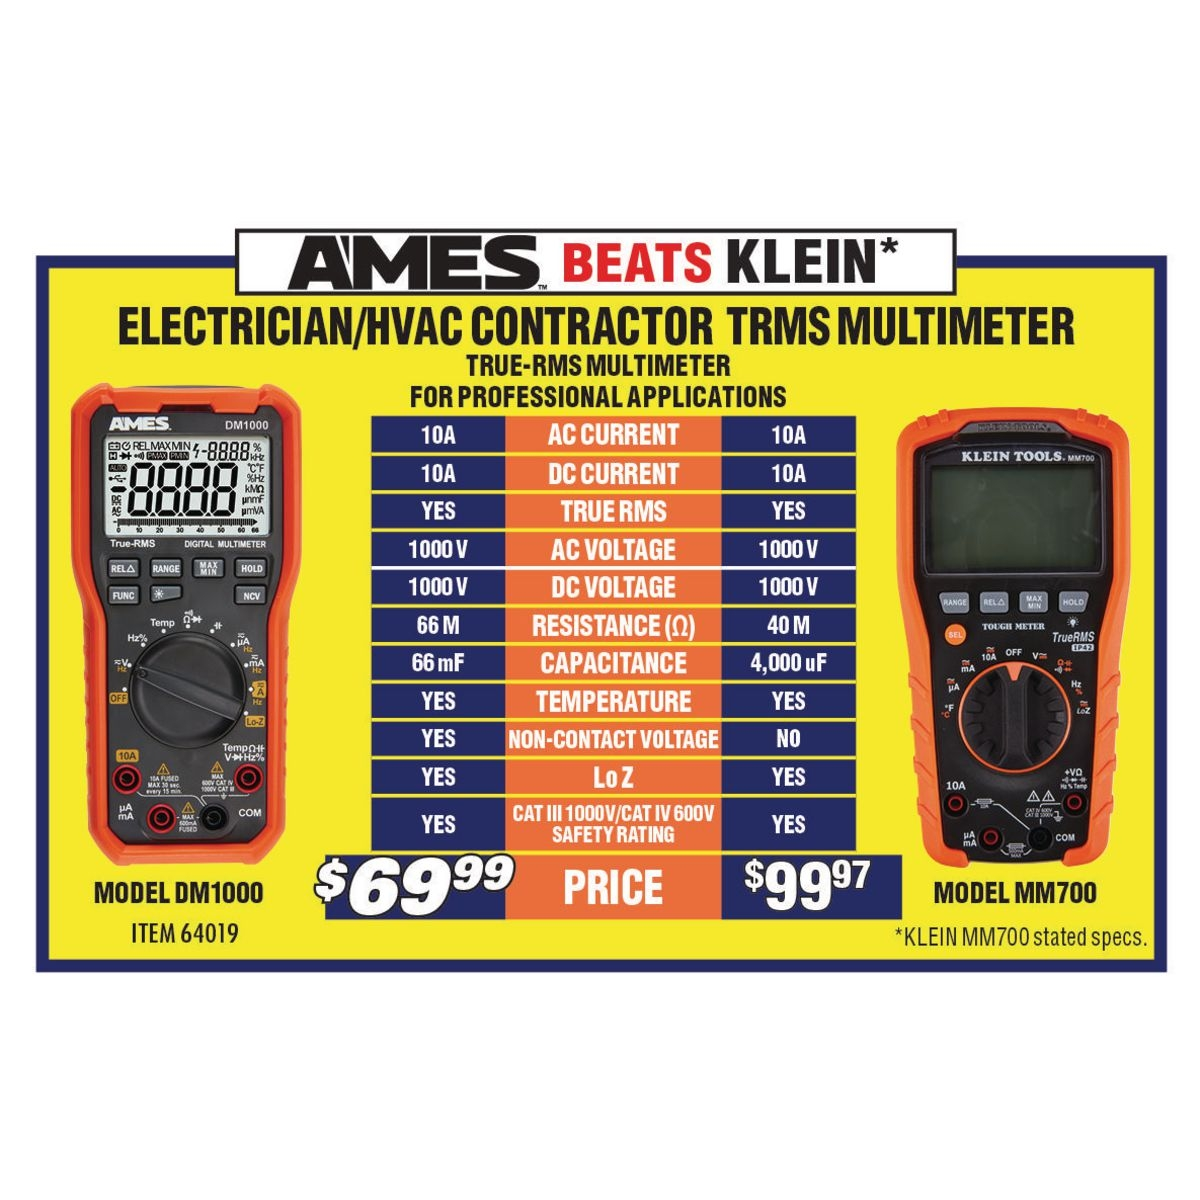 Electricians Hvac Contractor Trms Multimeter Digital From Reliable Circuit Suppliers On